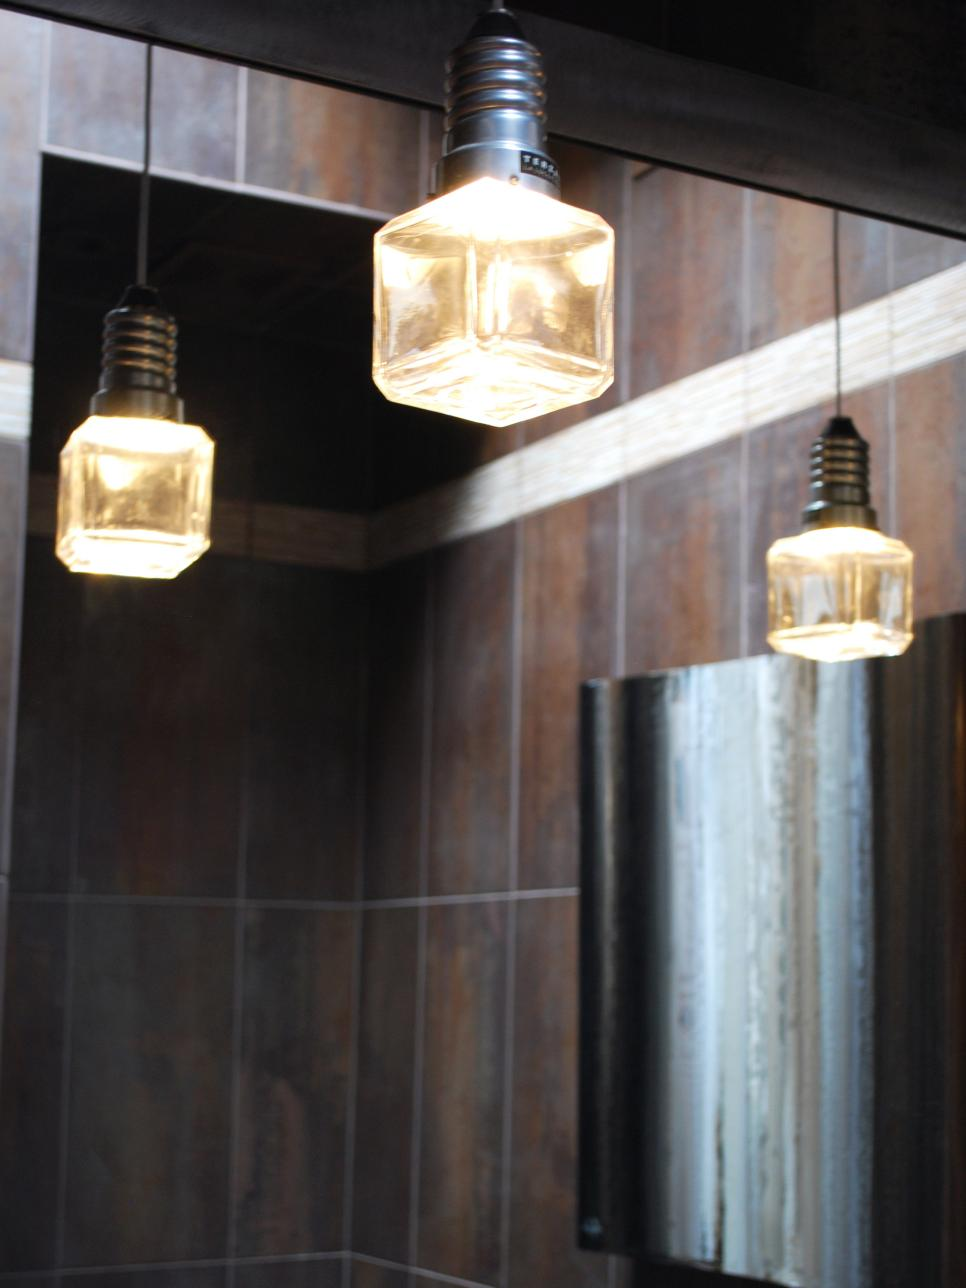 Brown Bathroom With Industrial Cube Pendants Reflecting in Mirror